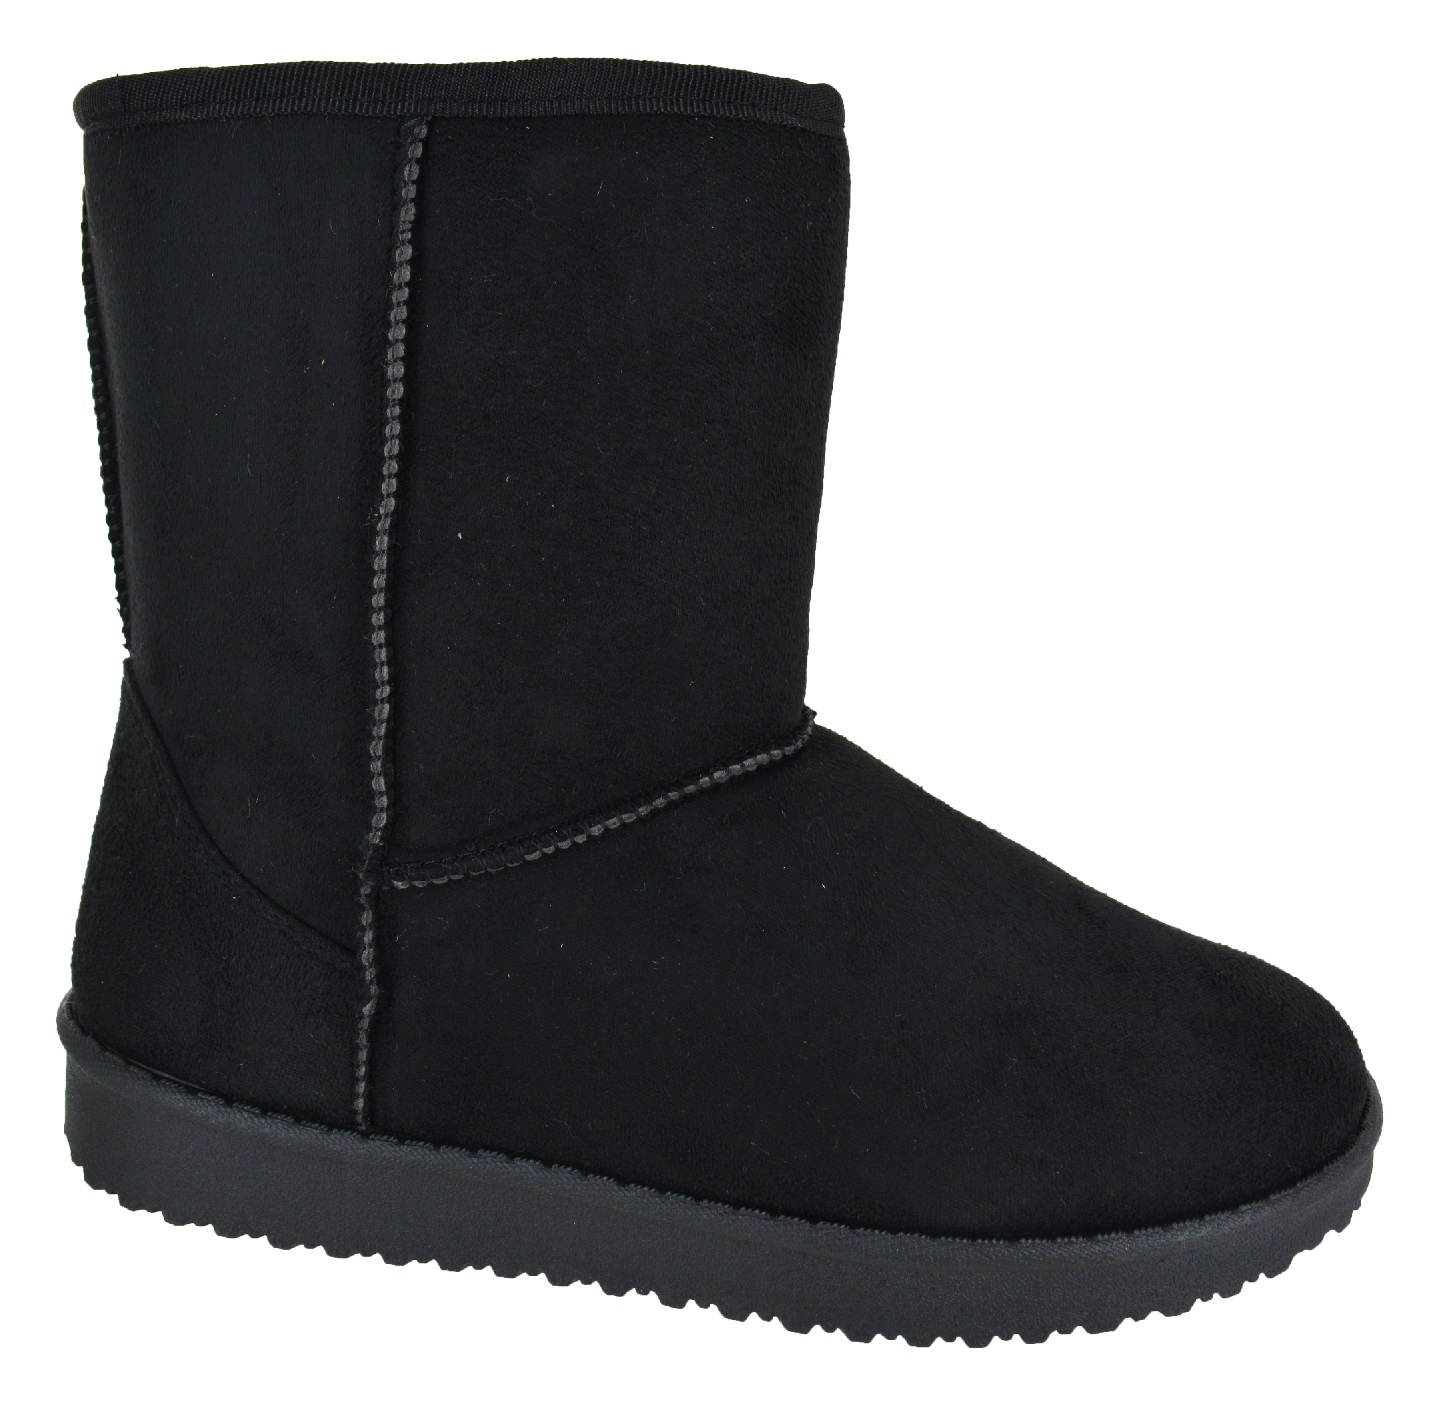 LADIES WOMENS ANKLE FAUX FUR LINED WARM WINTER SNOW SNUGG BOW SHOES BOOTS SIZE